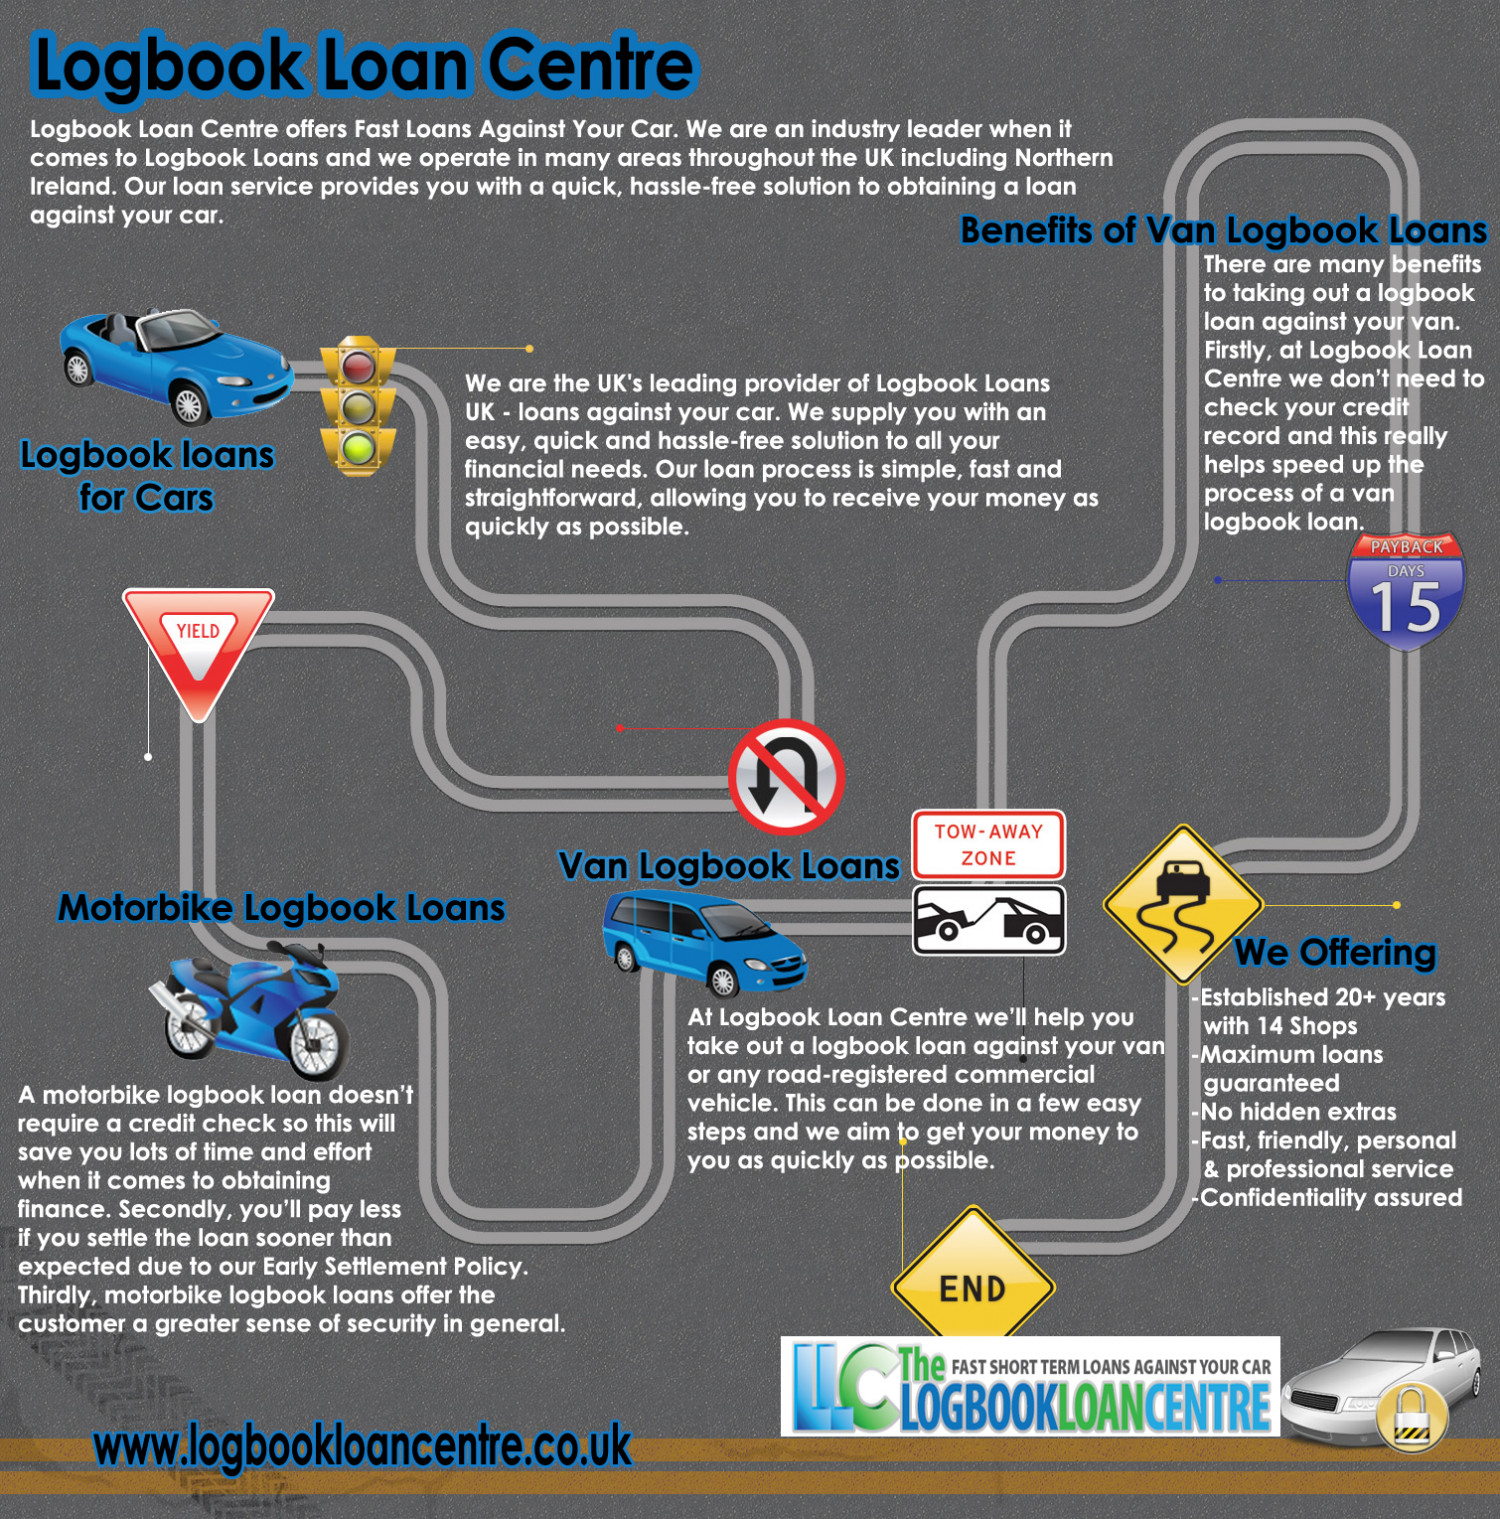 Logbookloancentre Infographic